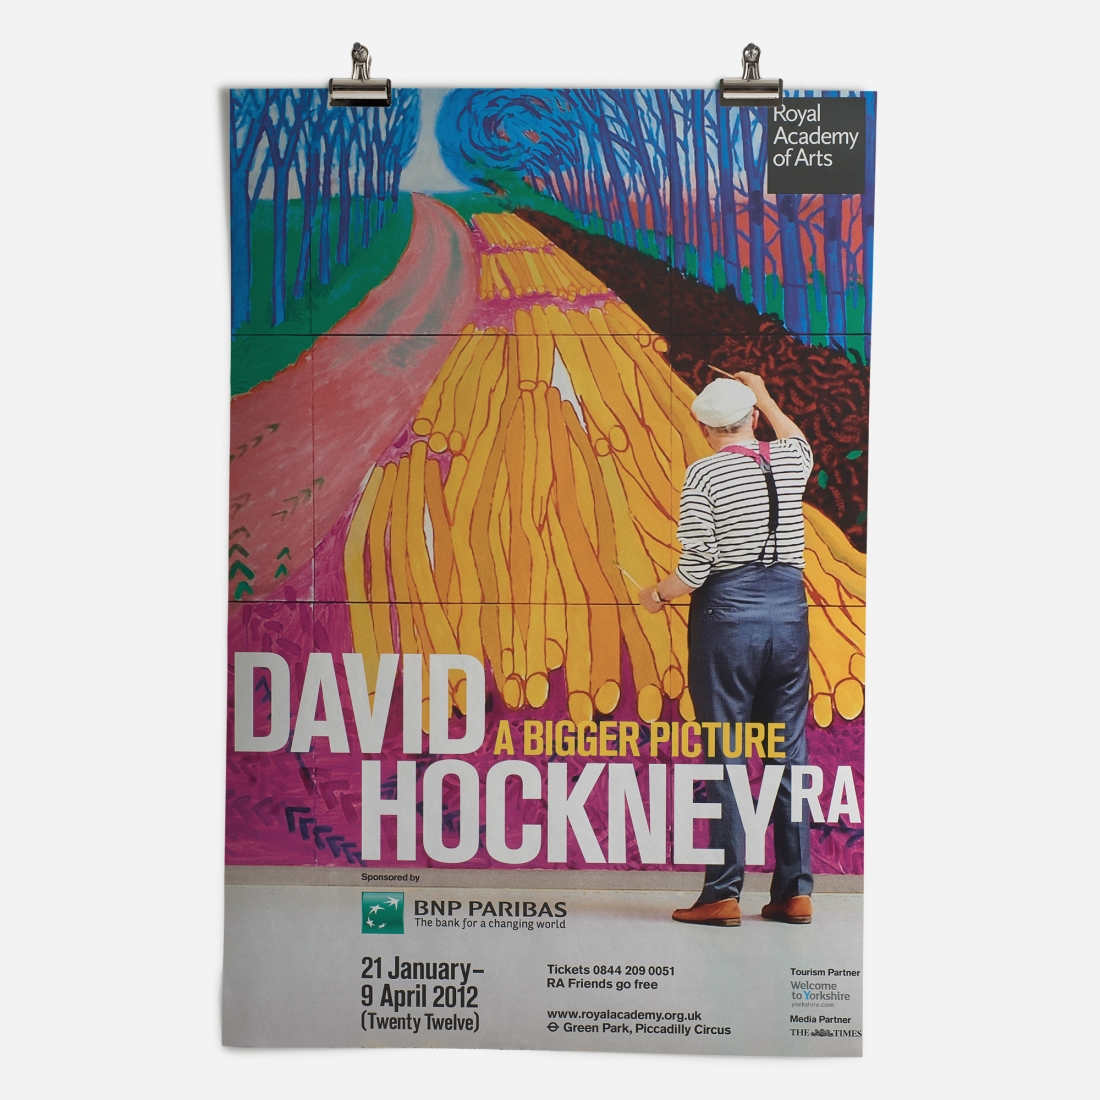 RA David Hockney Exhibition 2012 Epic Poster ​from the Royal Academy of Arts Collection